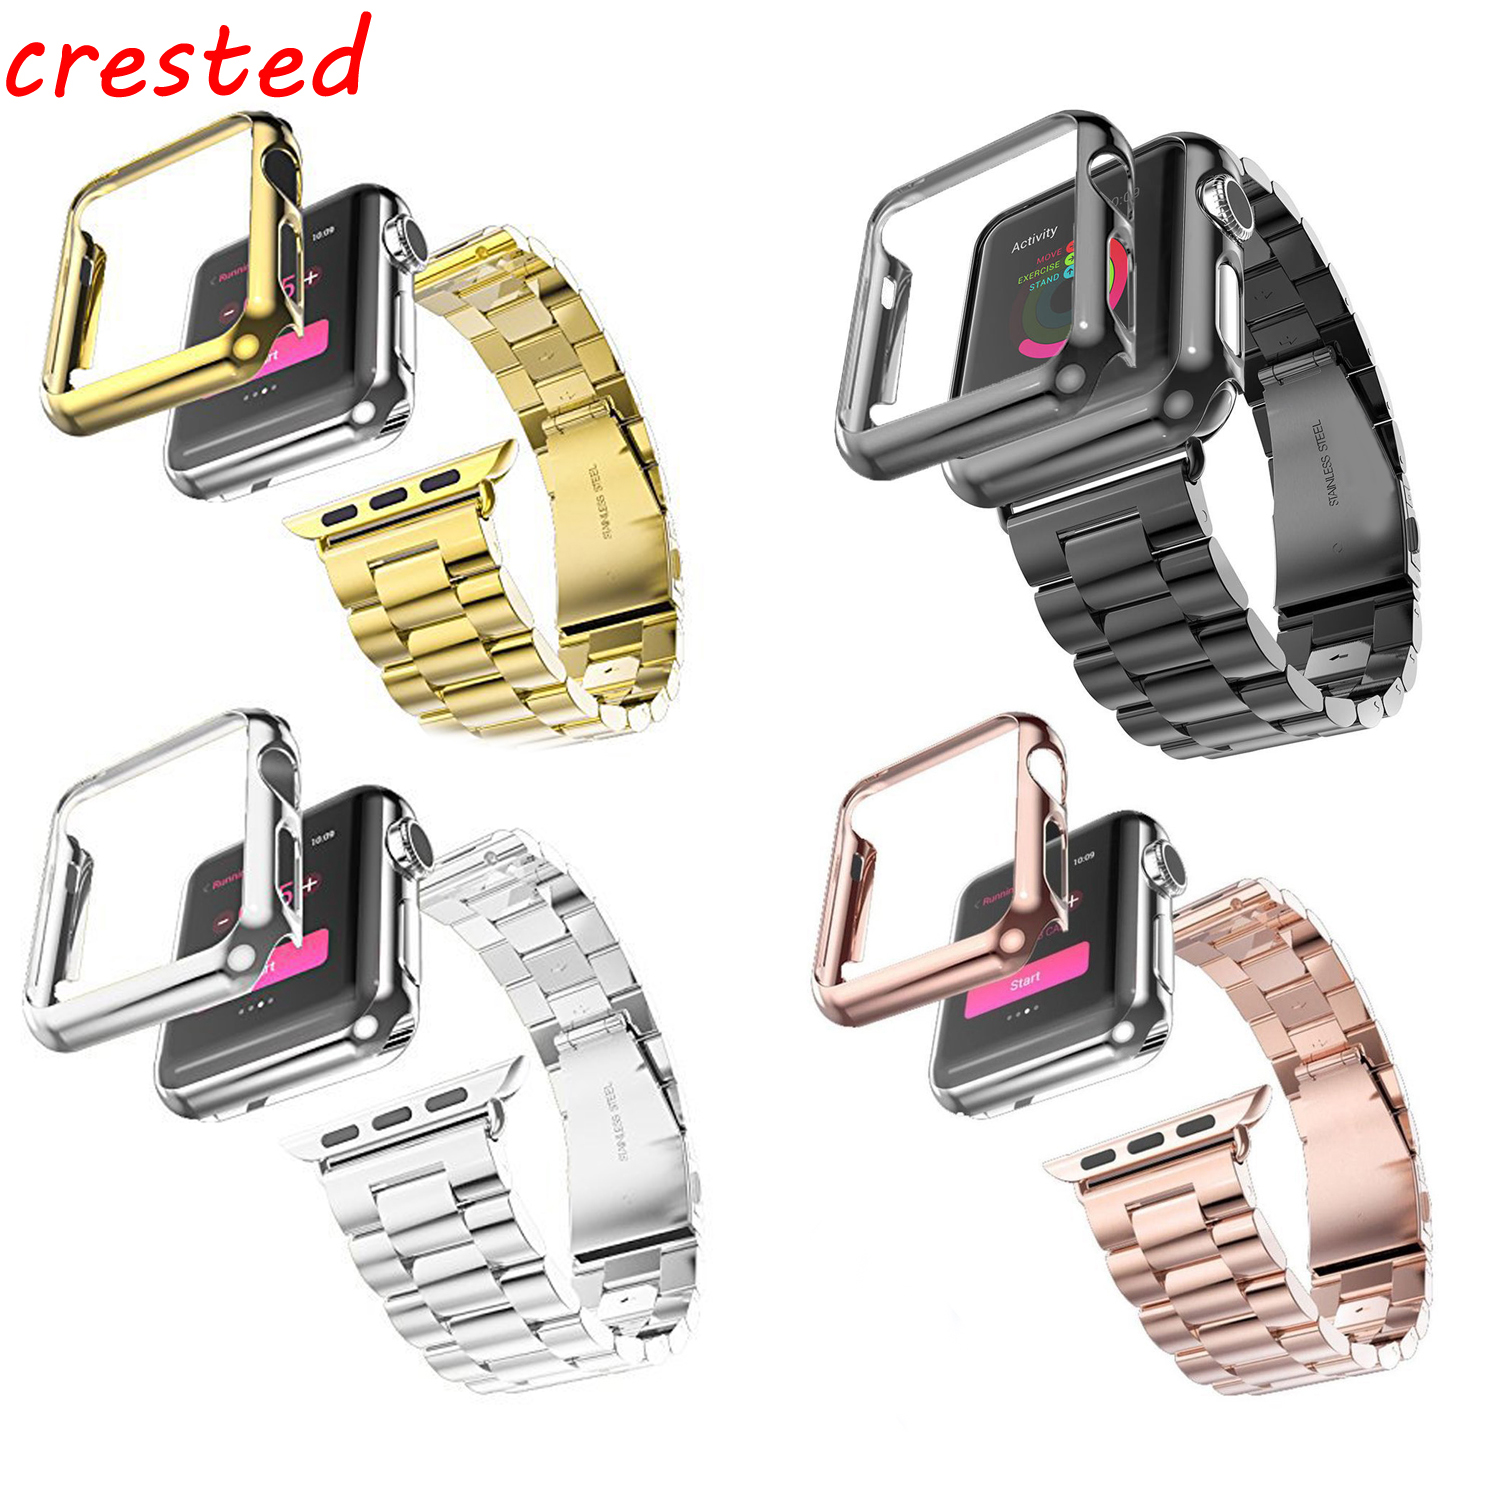 Stainless steel strap+case for apple watch band 42mm 38mm link bracelet metal belt watchband+for iwatch band Adjust Repair Tool Stainless steel strap+case for apple watch band 42mm 38mm link bracelet metal belt watchband+for iwatch band Adjust Repair Tool